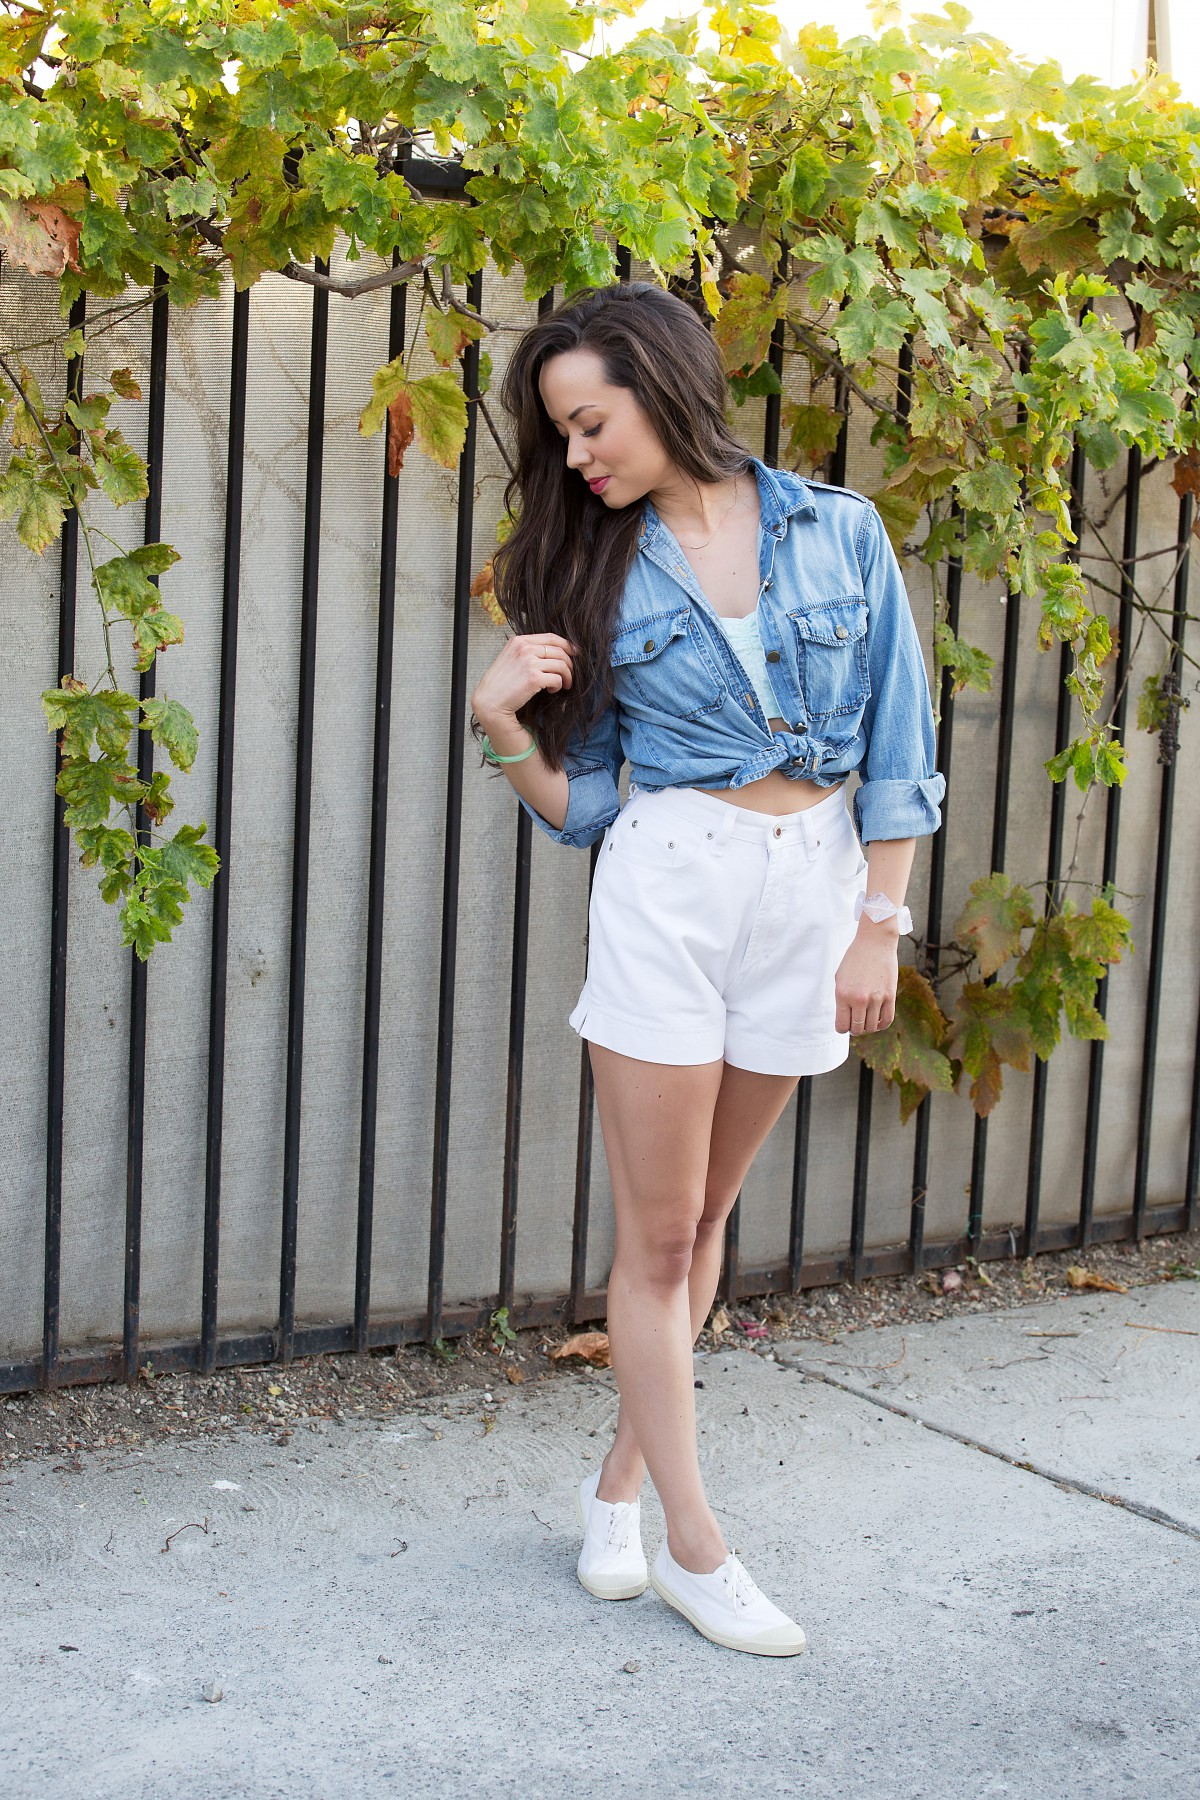 la model, los angeles fashion, style blog, vintage fashion, high waist shorts, crop top